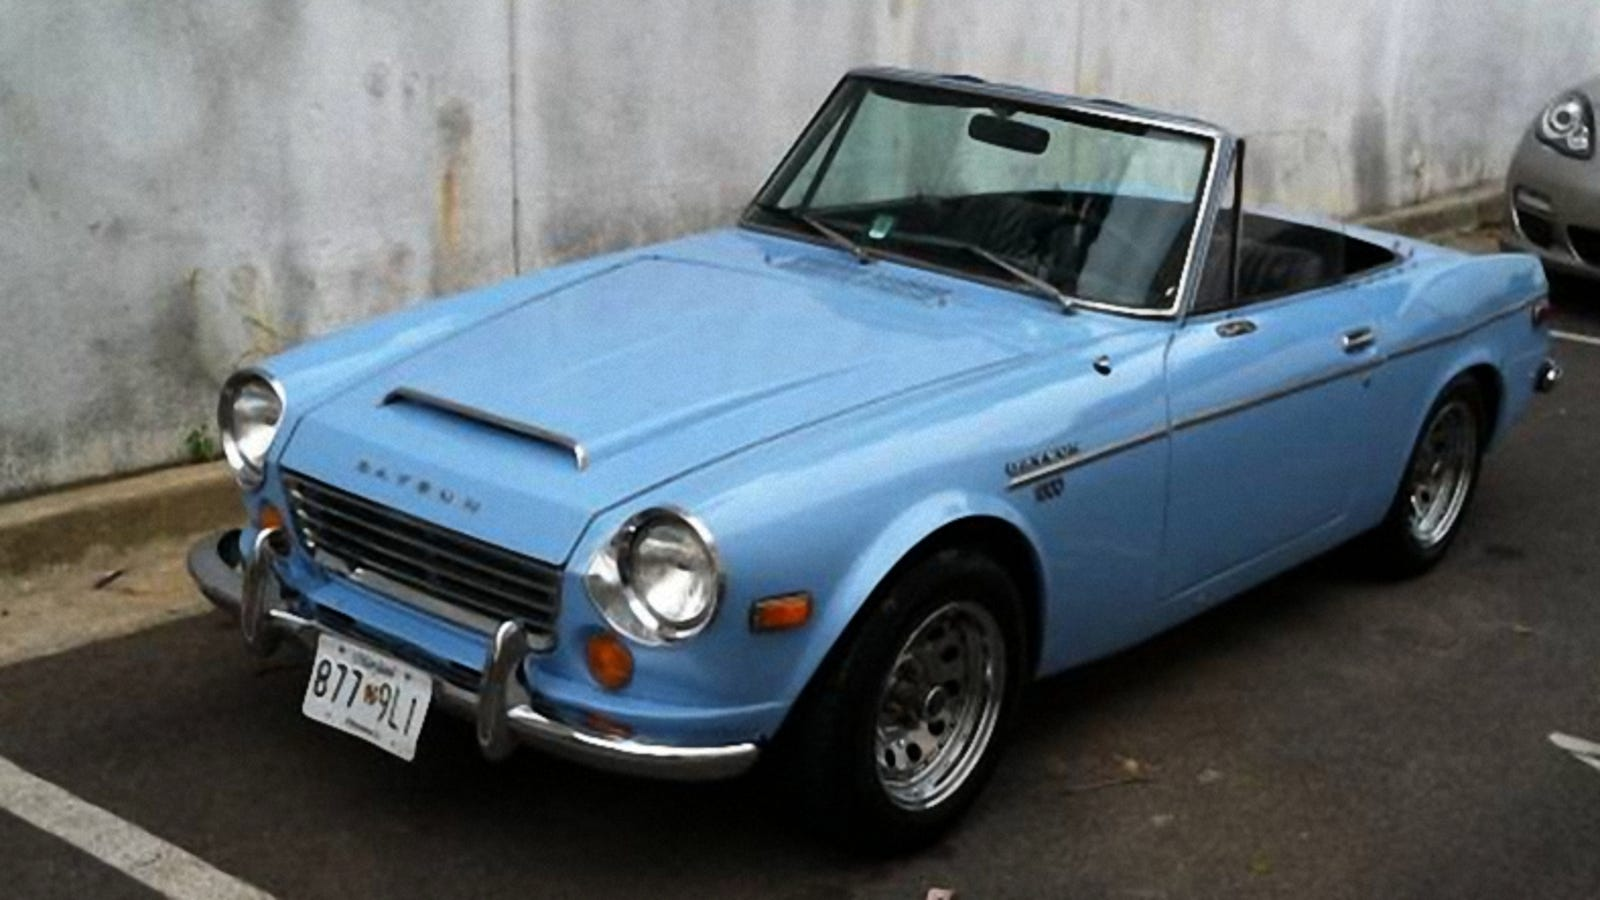 For $5,500, Would You Like To Find This 1970 Datsun 1600